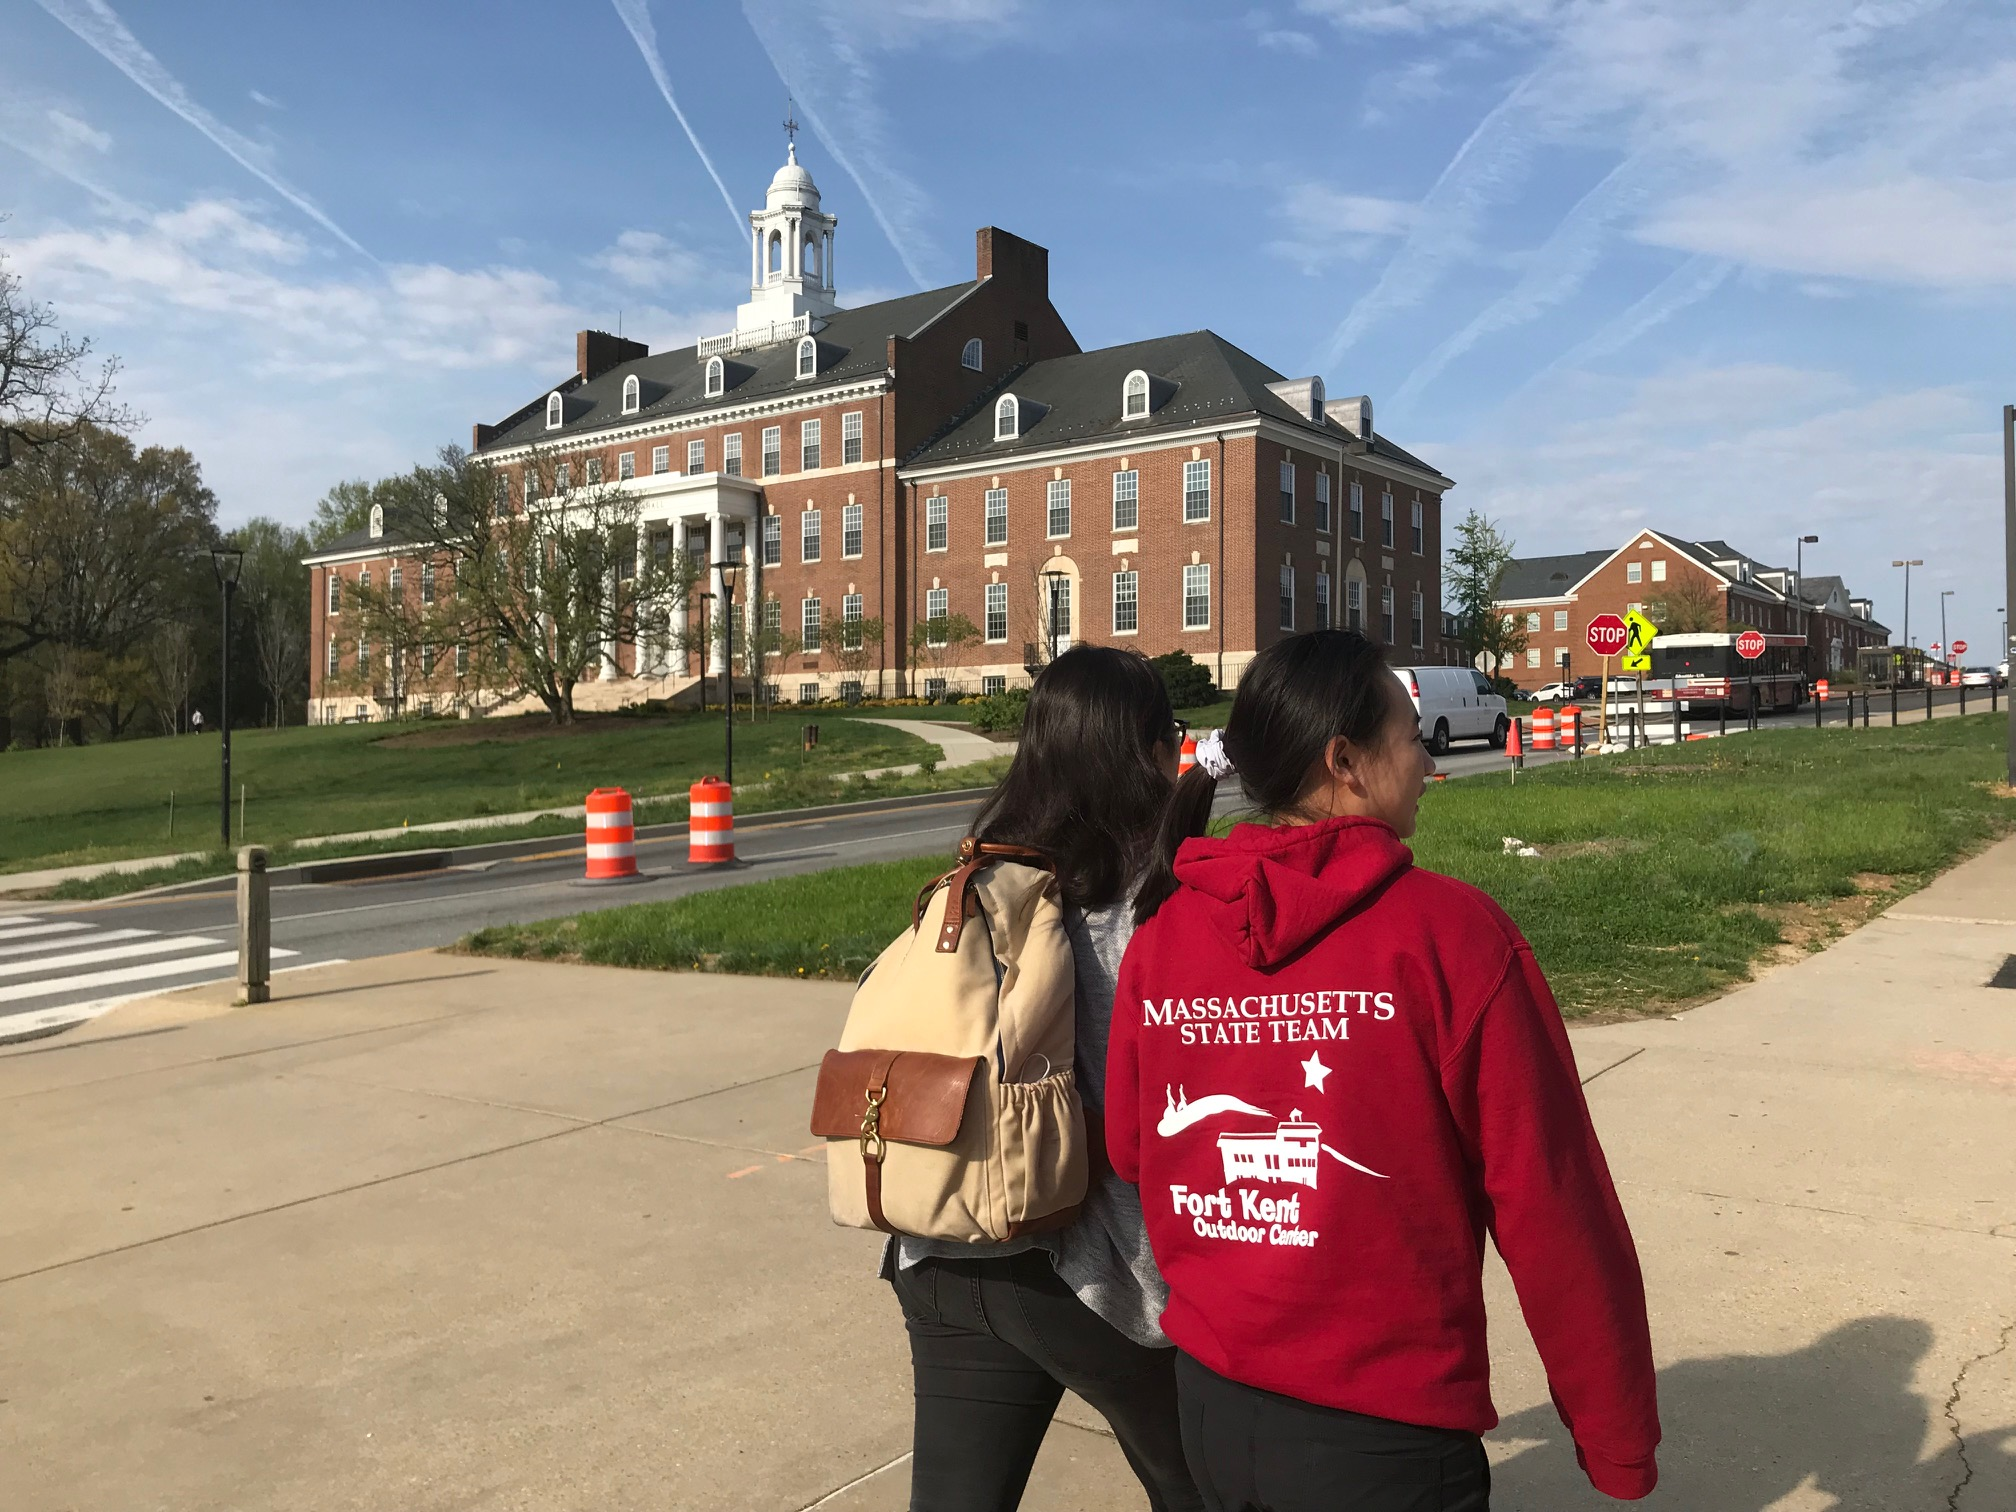 Visiting The University of Maryland College Park campus visit